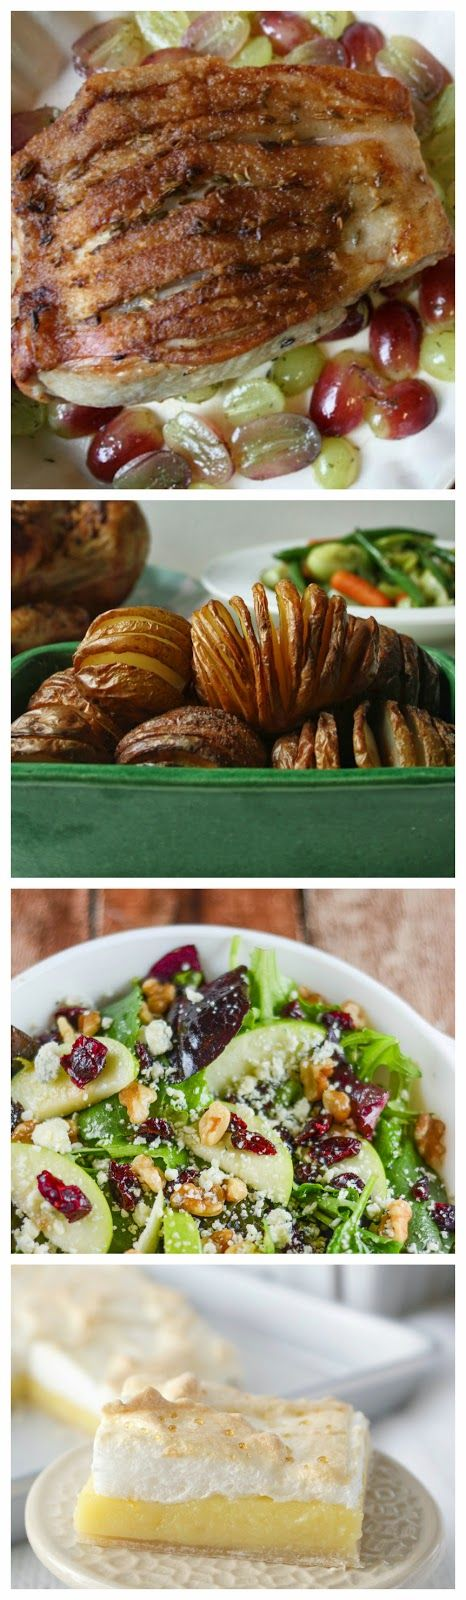 Best 25 easter meal ideas ideas on pinterest easter dinner menu 24 delicious mix match easter dinner meal plan options forumfinder Images